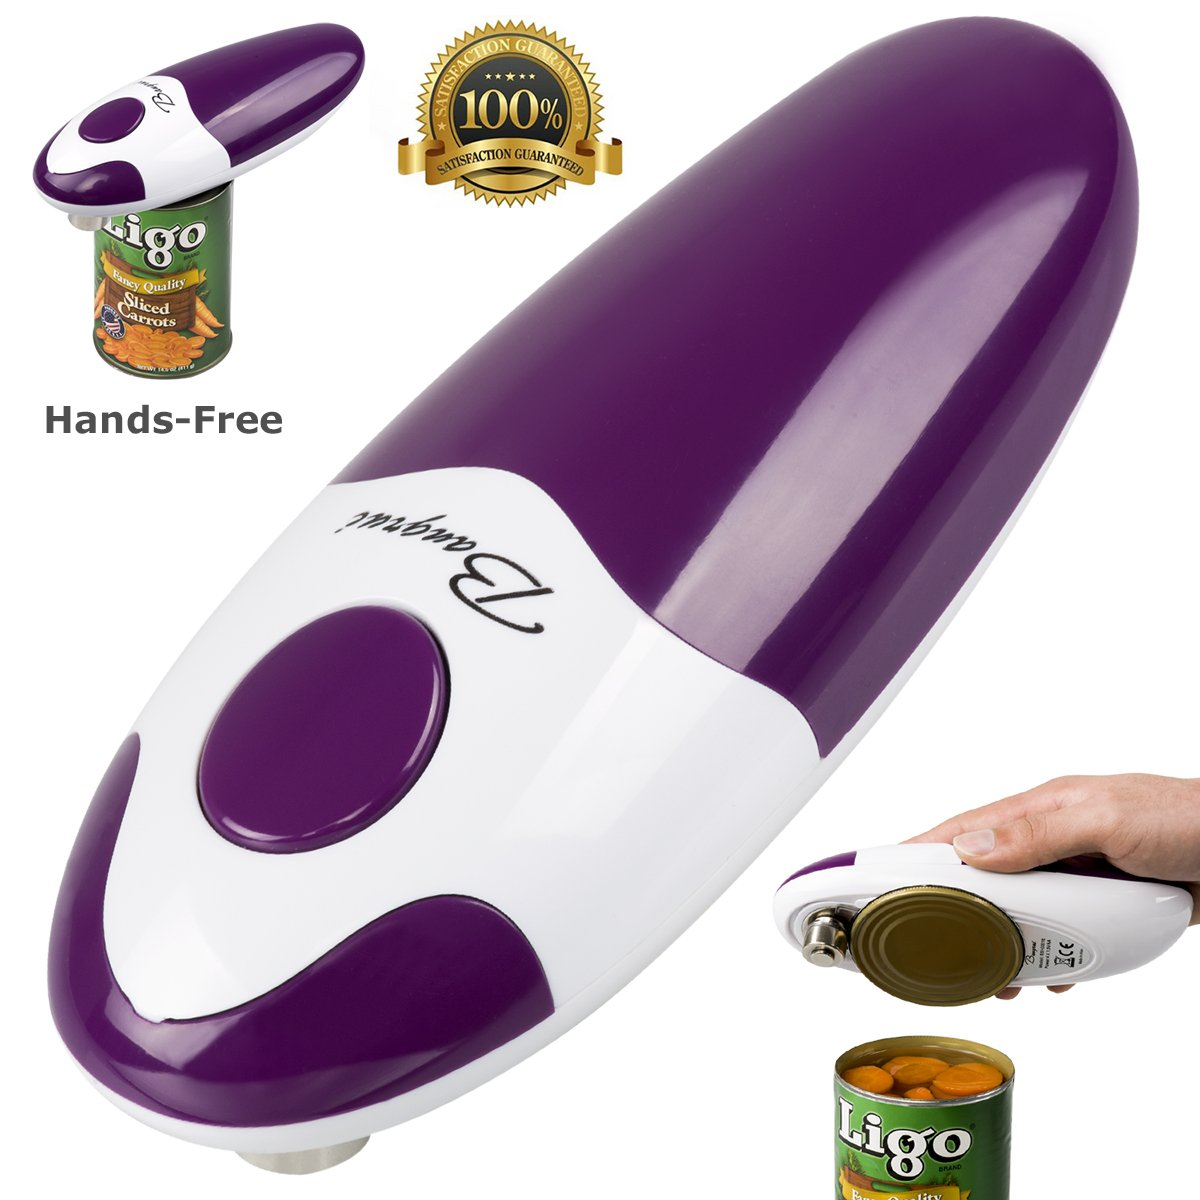 Top 10 Best Electric Can Openers For Large Cans 2018 2019